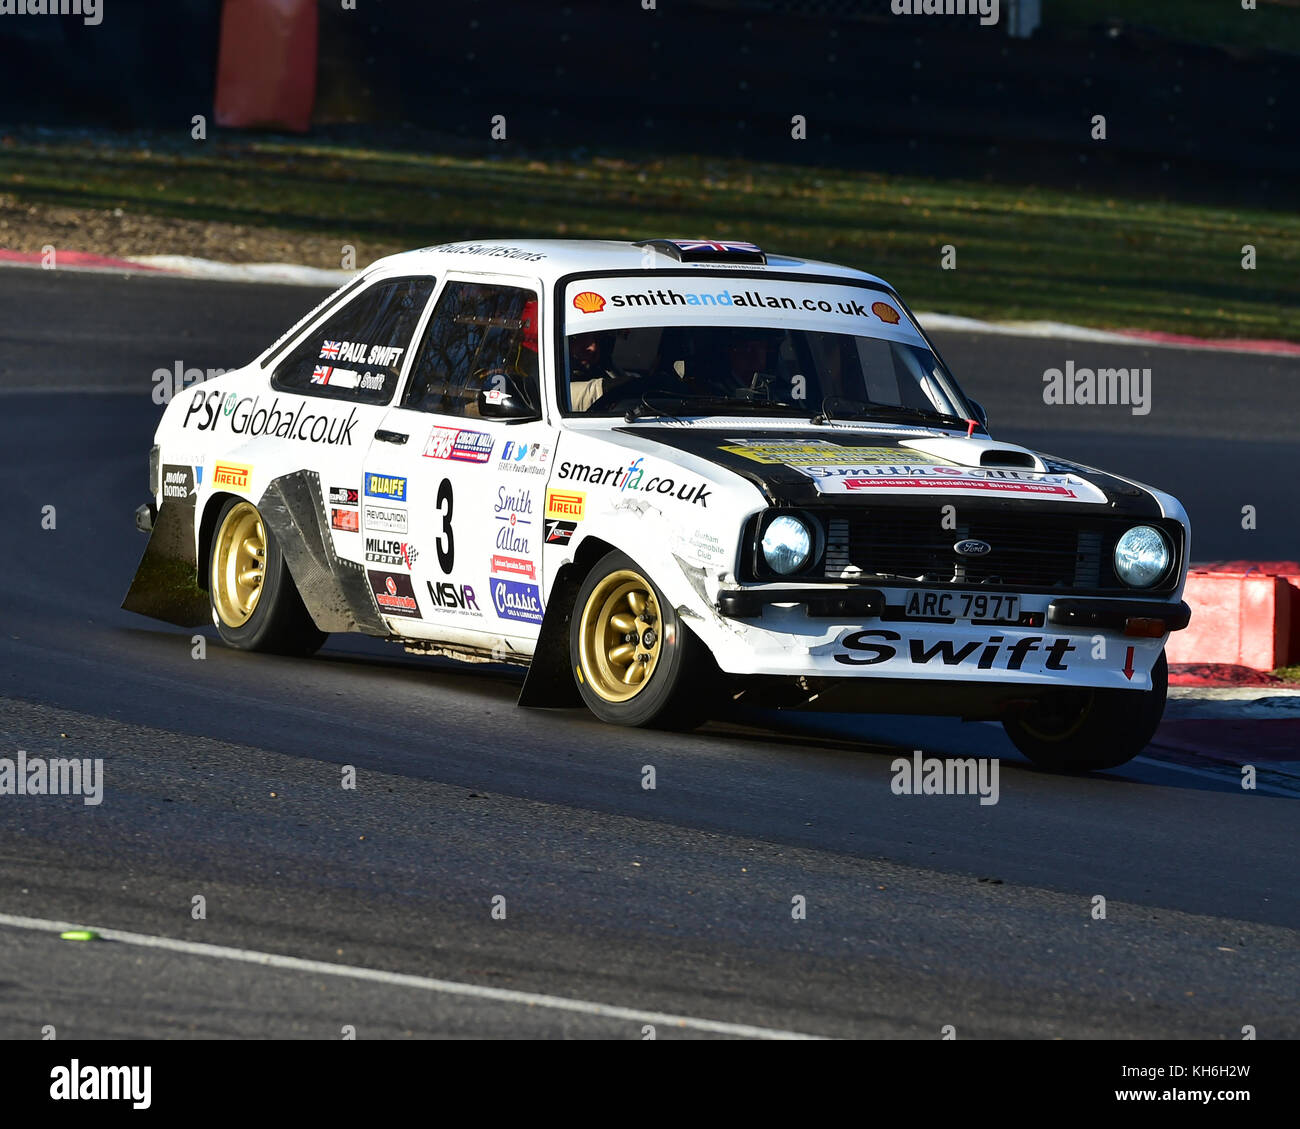 Ford mk2 escort stock photos ford mk2 escort stock for National motor club compensation plan